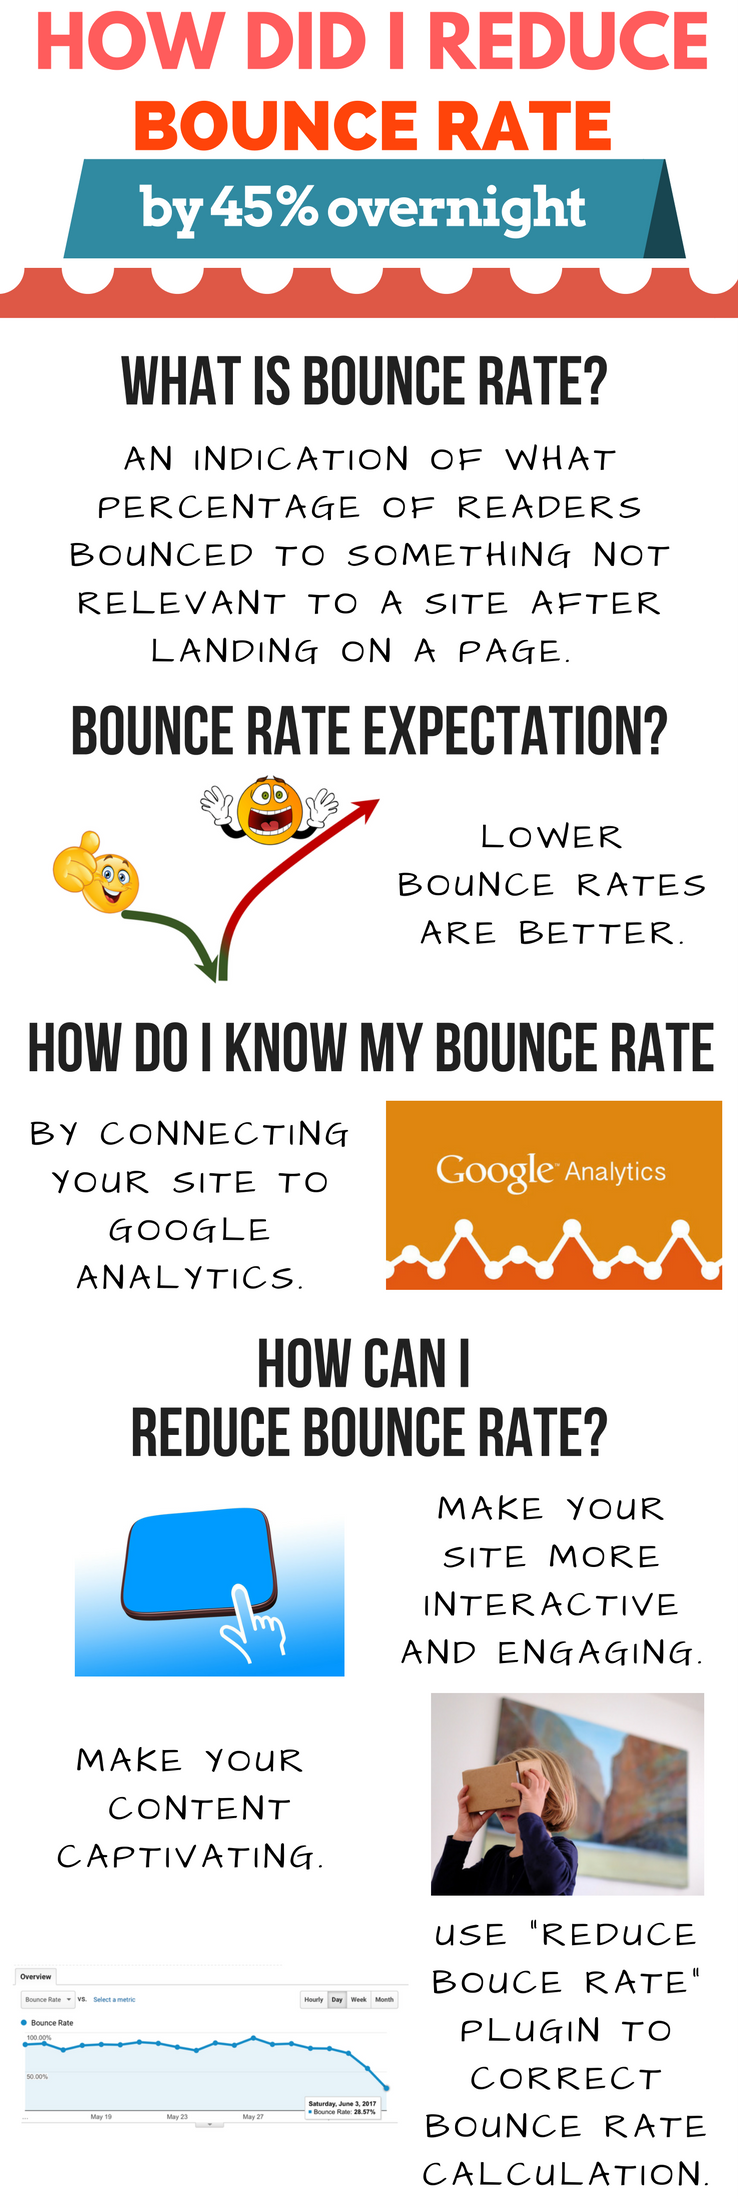 Reducing bounce rate and making your blog interactive.